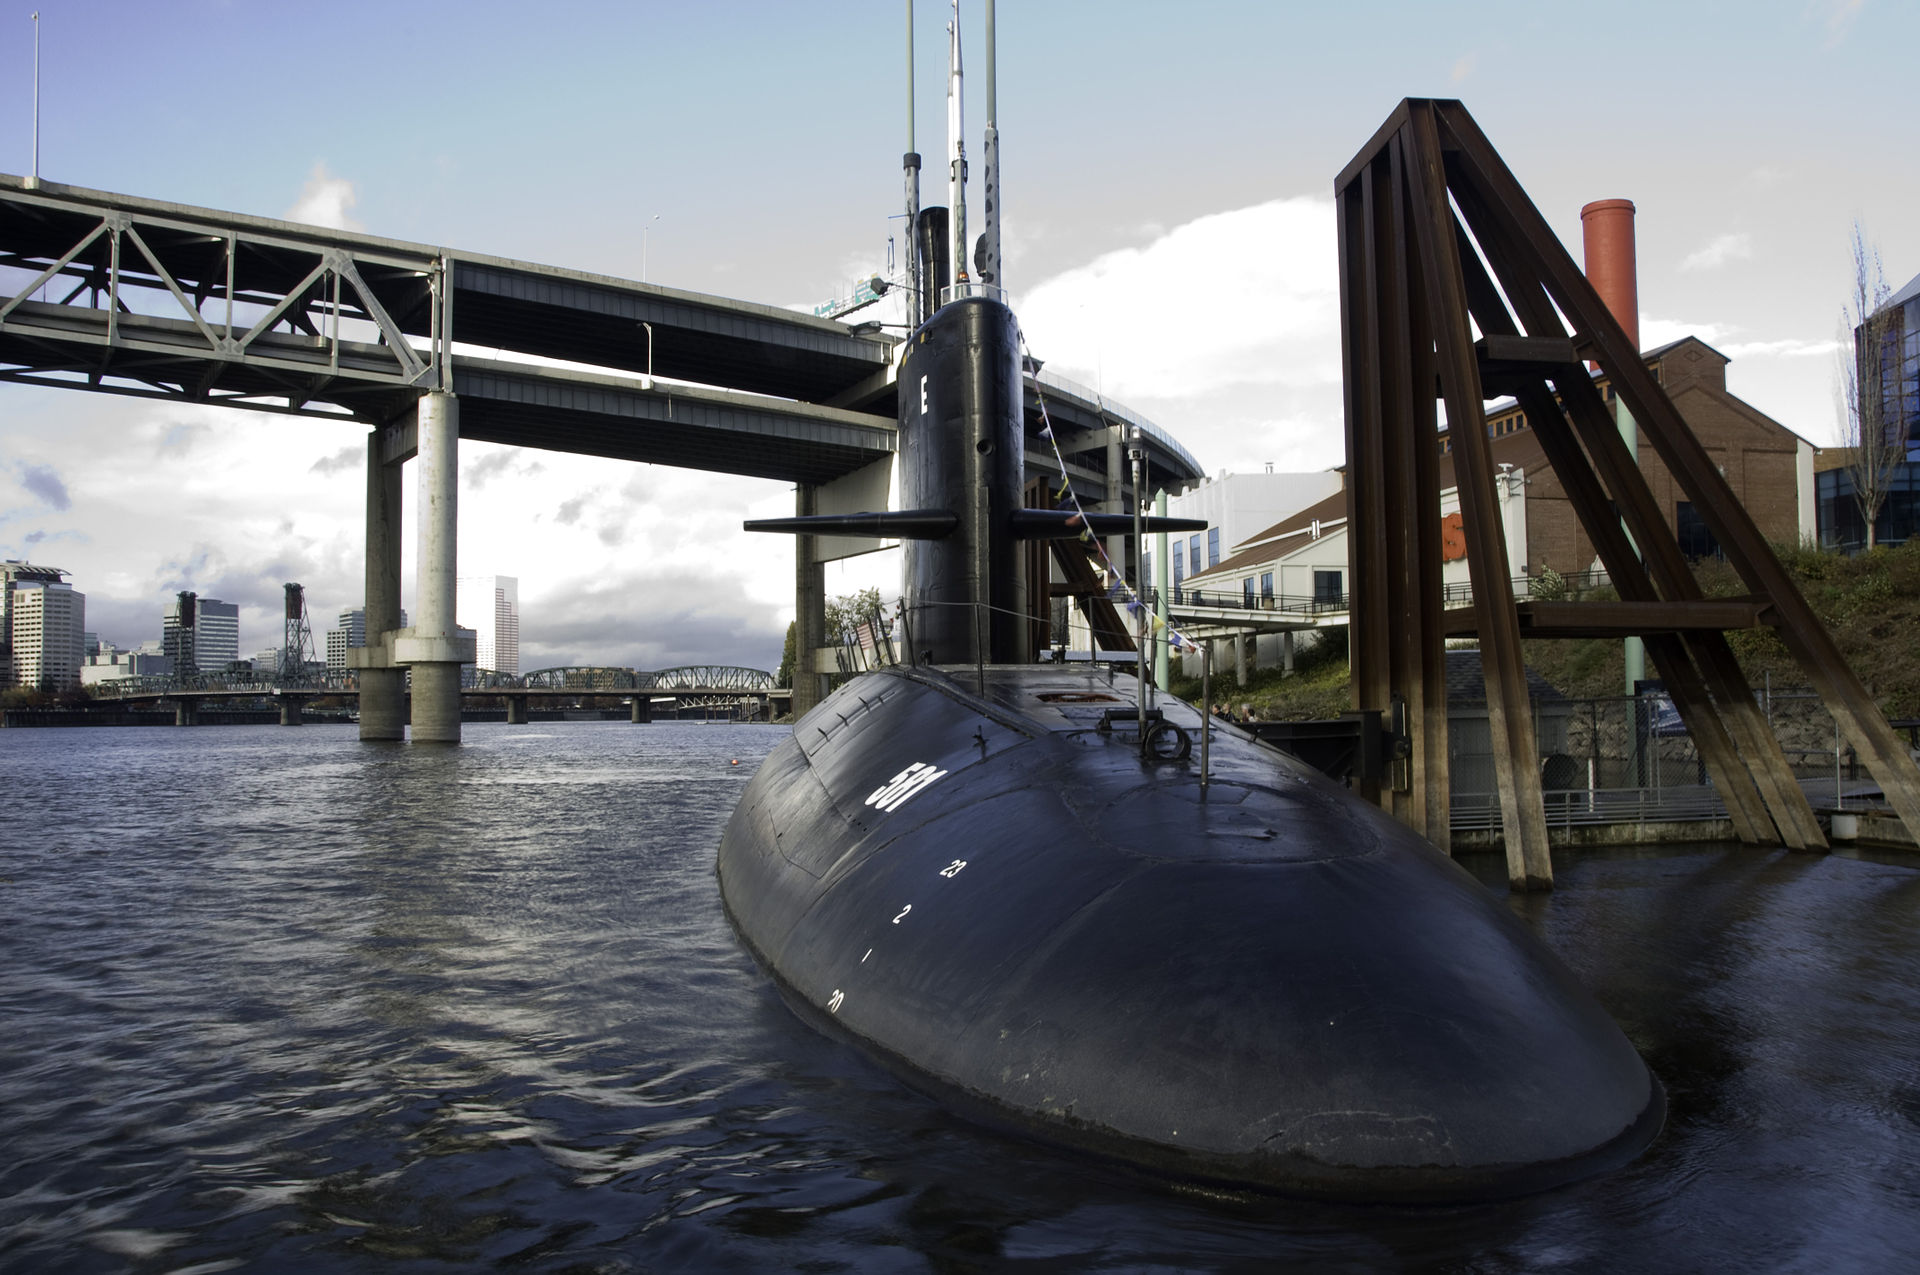 The USS Blueback, the last non-nuclear attack submarine built, is a major attraction at the museum.